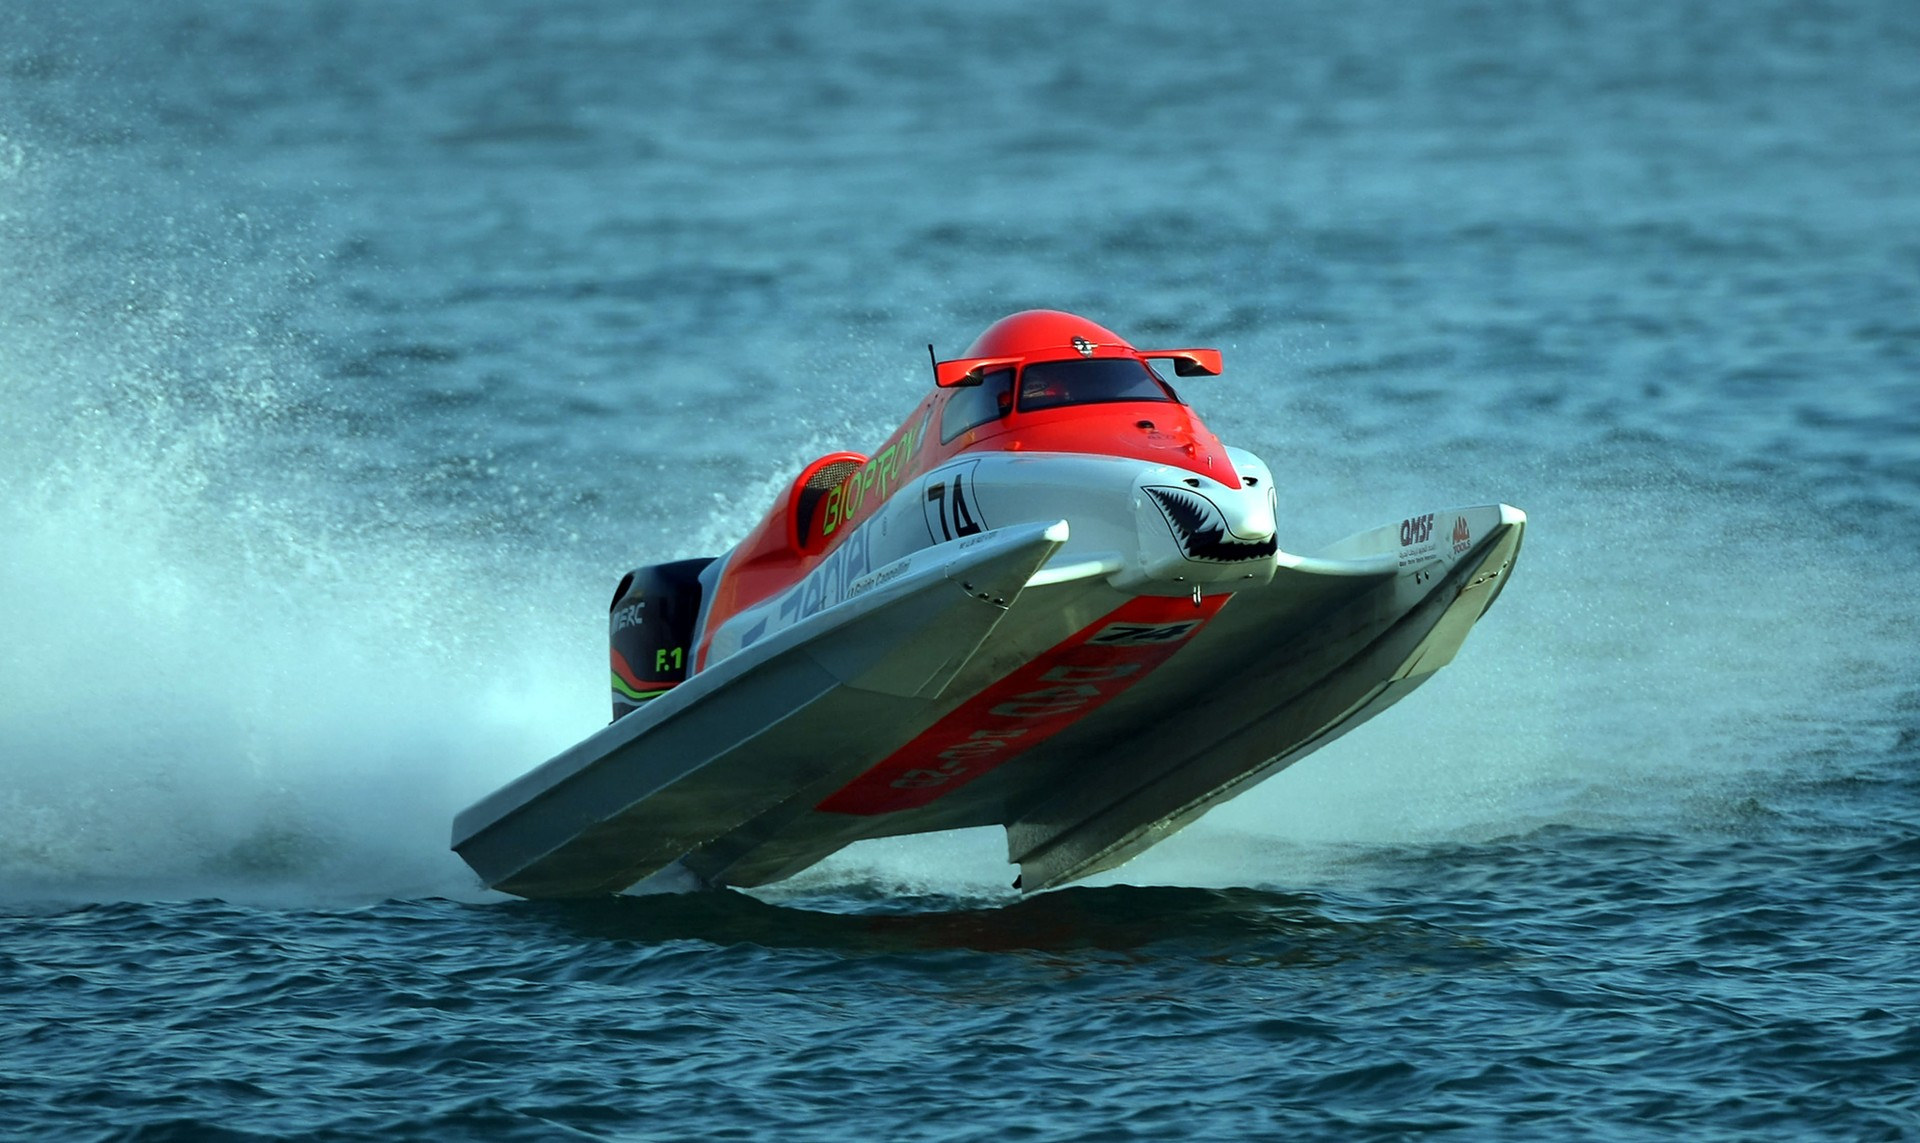 GP OF QATAR-271109-Guido Cappellini of Italy of the Zepter team in action in race one of the UIM F1 Powerboat Grand Prix of Qatar, on the Doha Corniche, Doha, Qatar, the race days are November 27-28, 2009. Picture by Paul Lakatos/Idea Marketing.